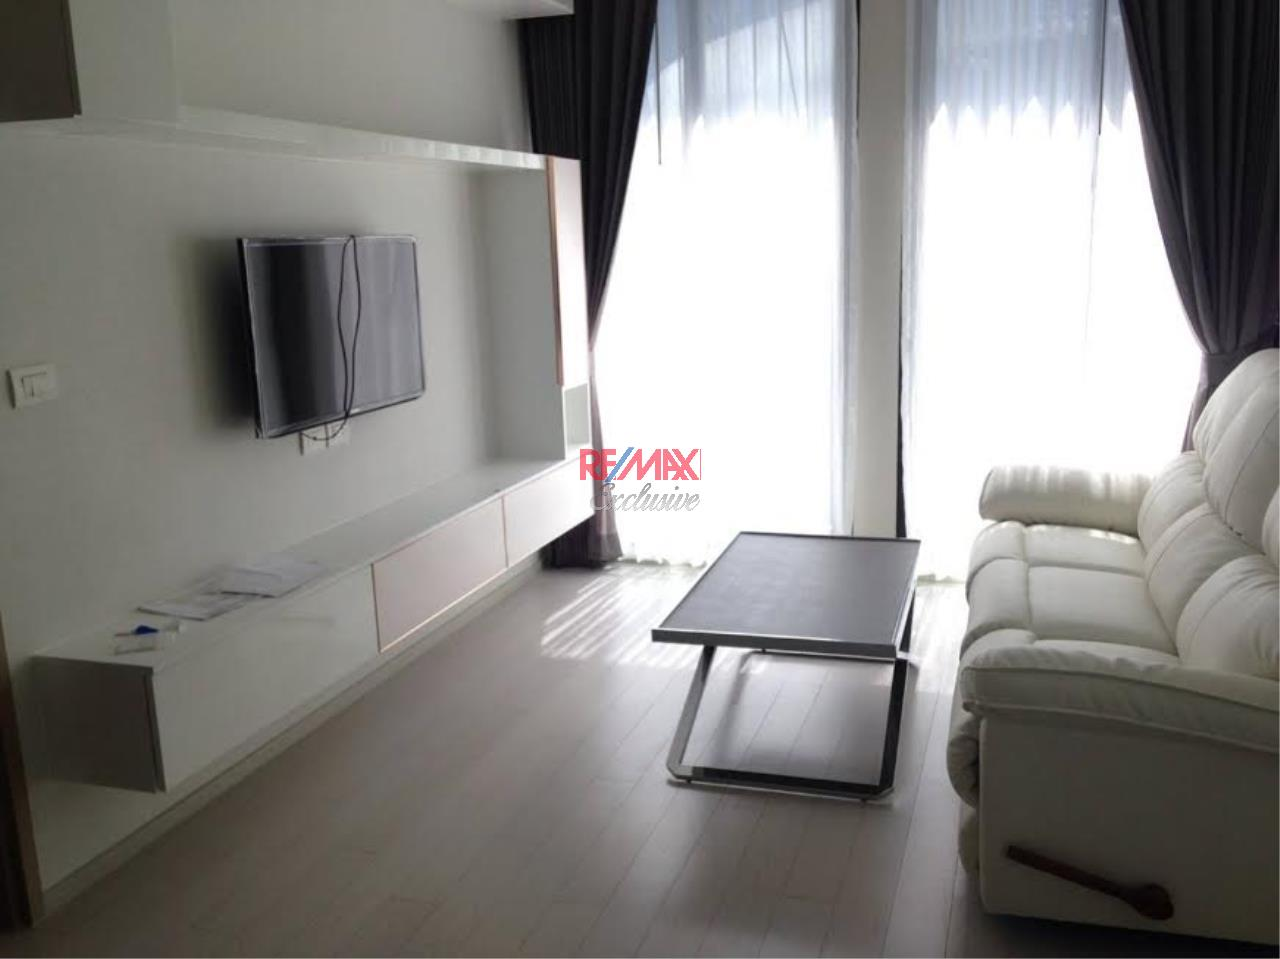 RE/MAX Exclusive Agency's Noble Ploenchit, 1 bedroom, 1 bathroom, For Rent Only 55,000 THB 2